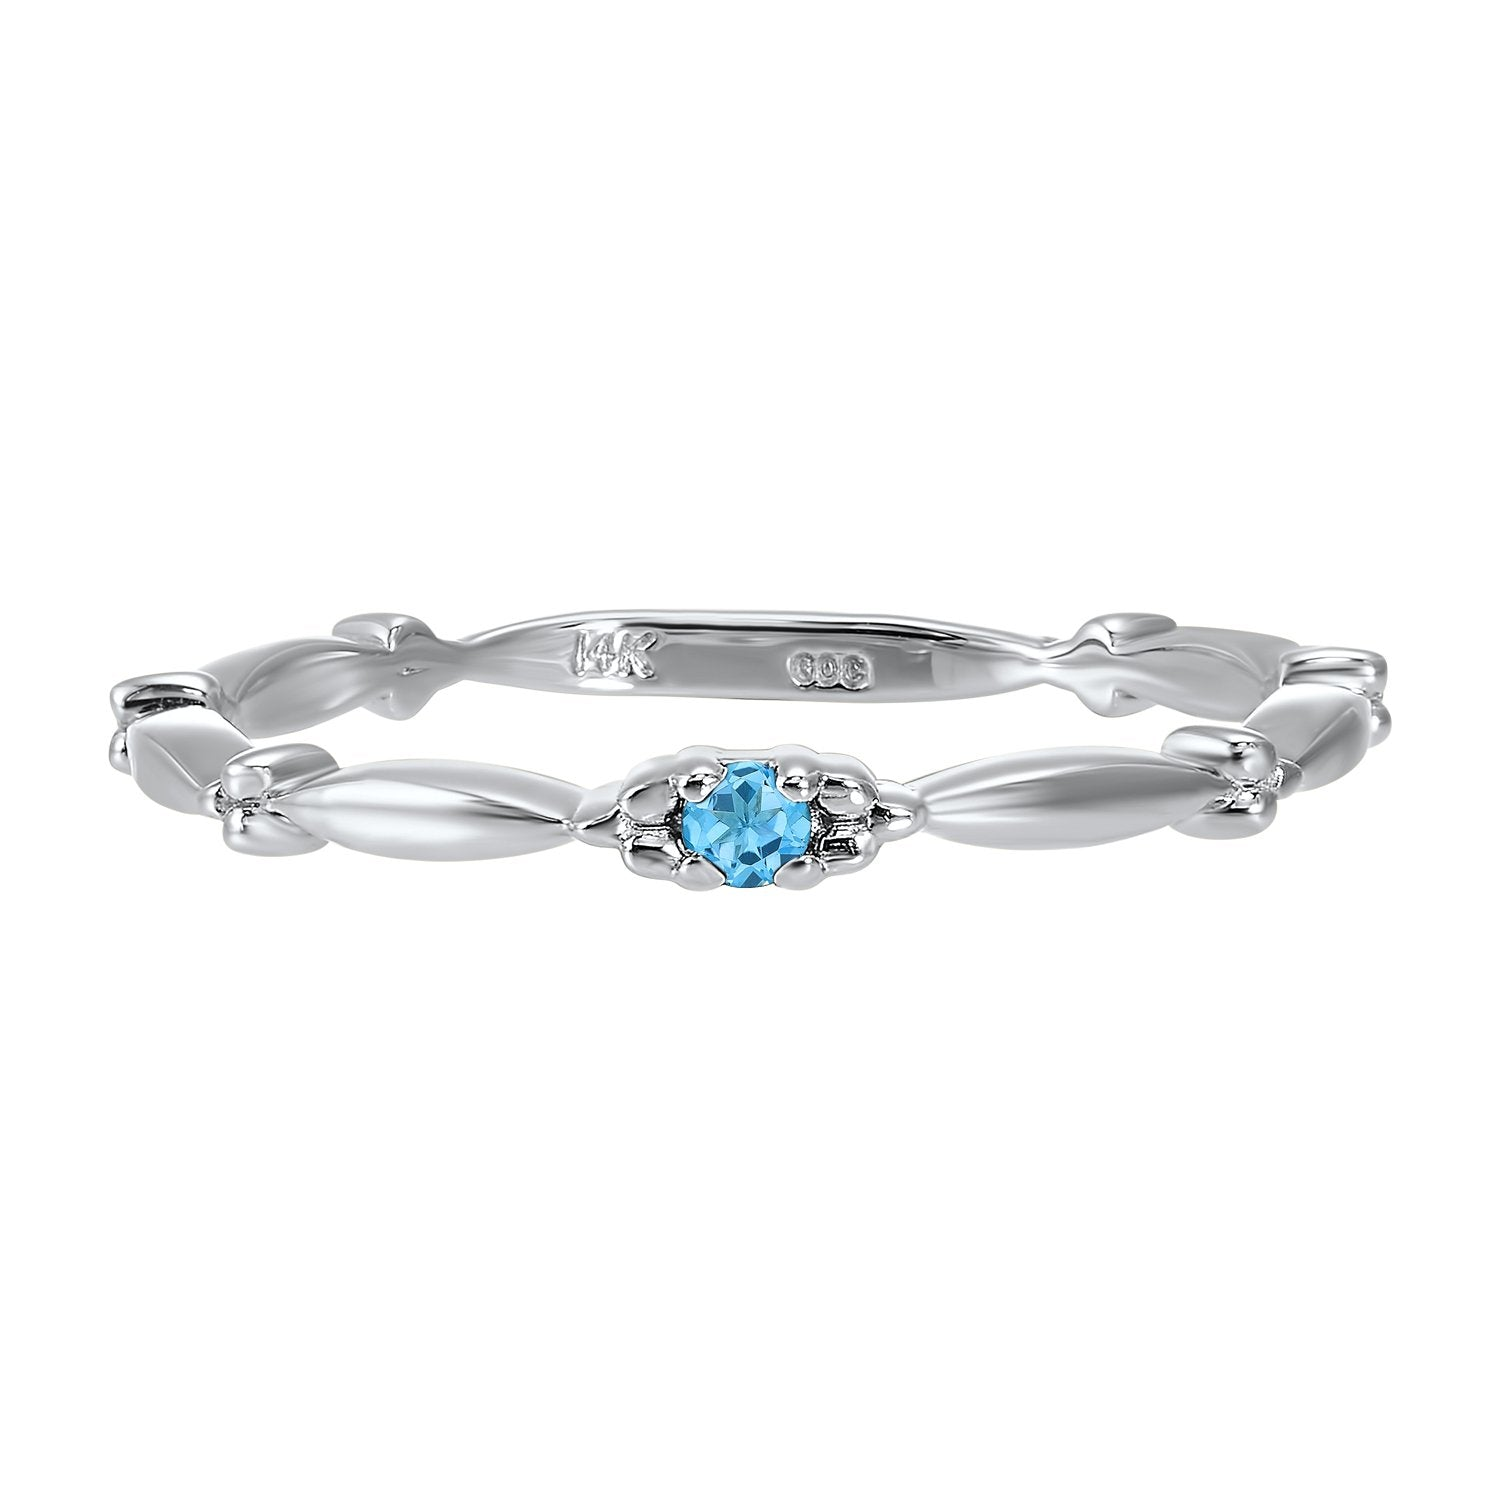 10K White Gold Stackable Prong Blue Topaz Band